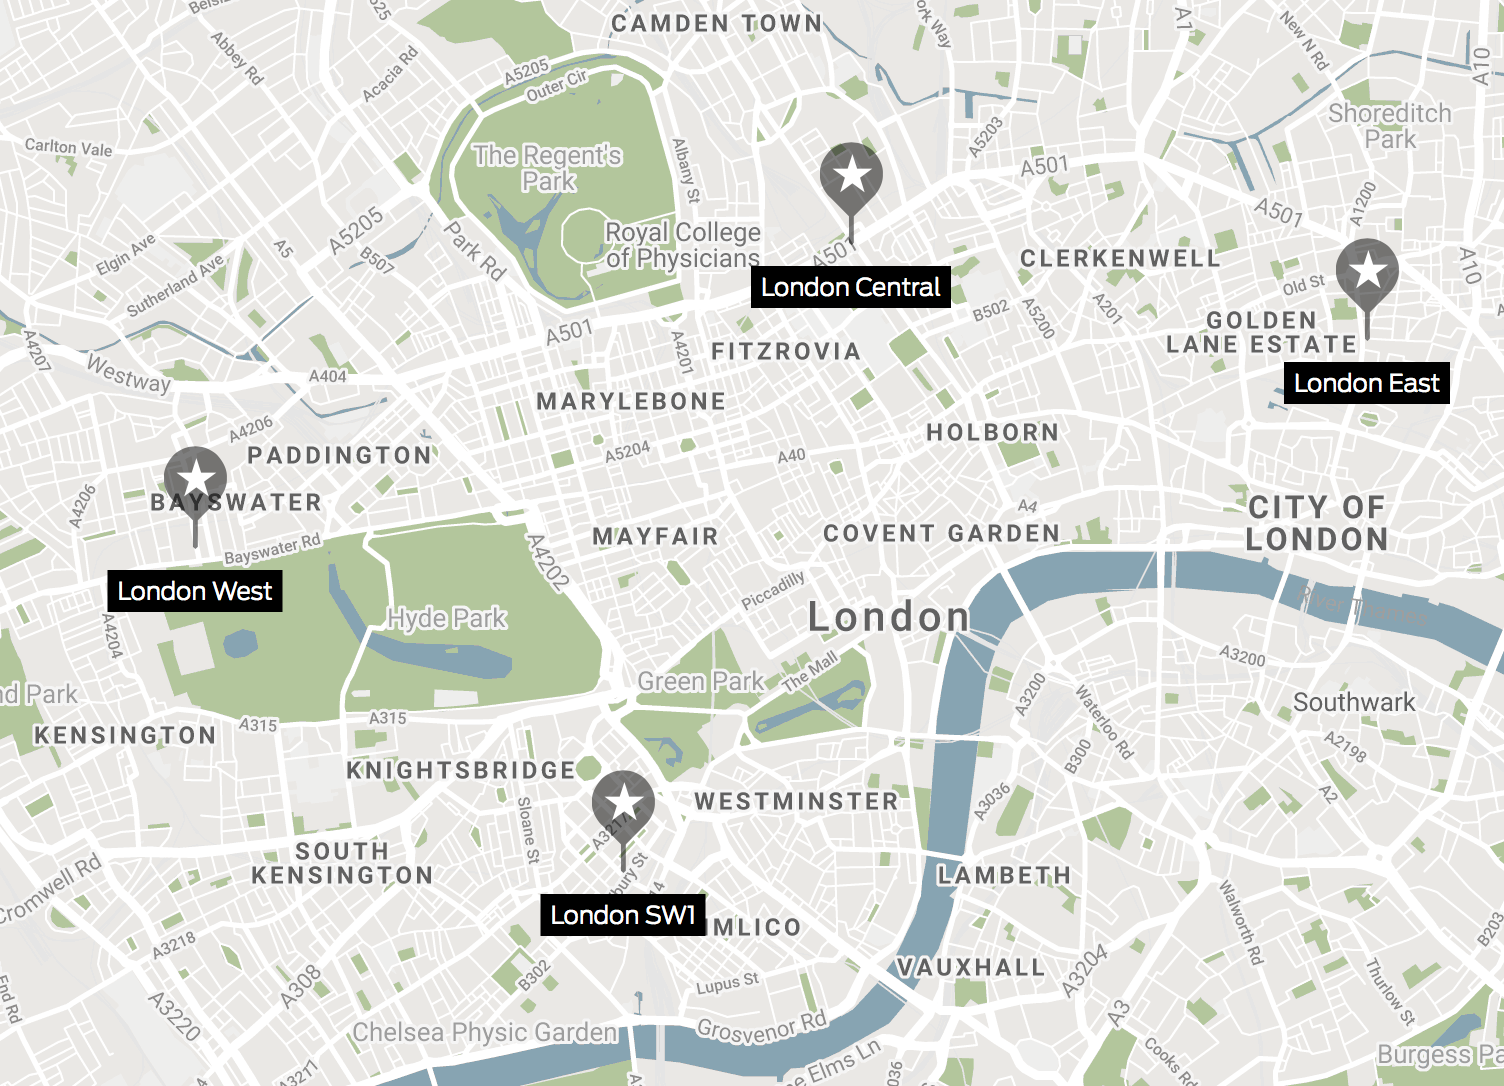 Where to find them? - - London West,W2 4QJ- London SW1, SW1W 9NF- London Central, NW1 2BH- London East, EC2A 2AH